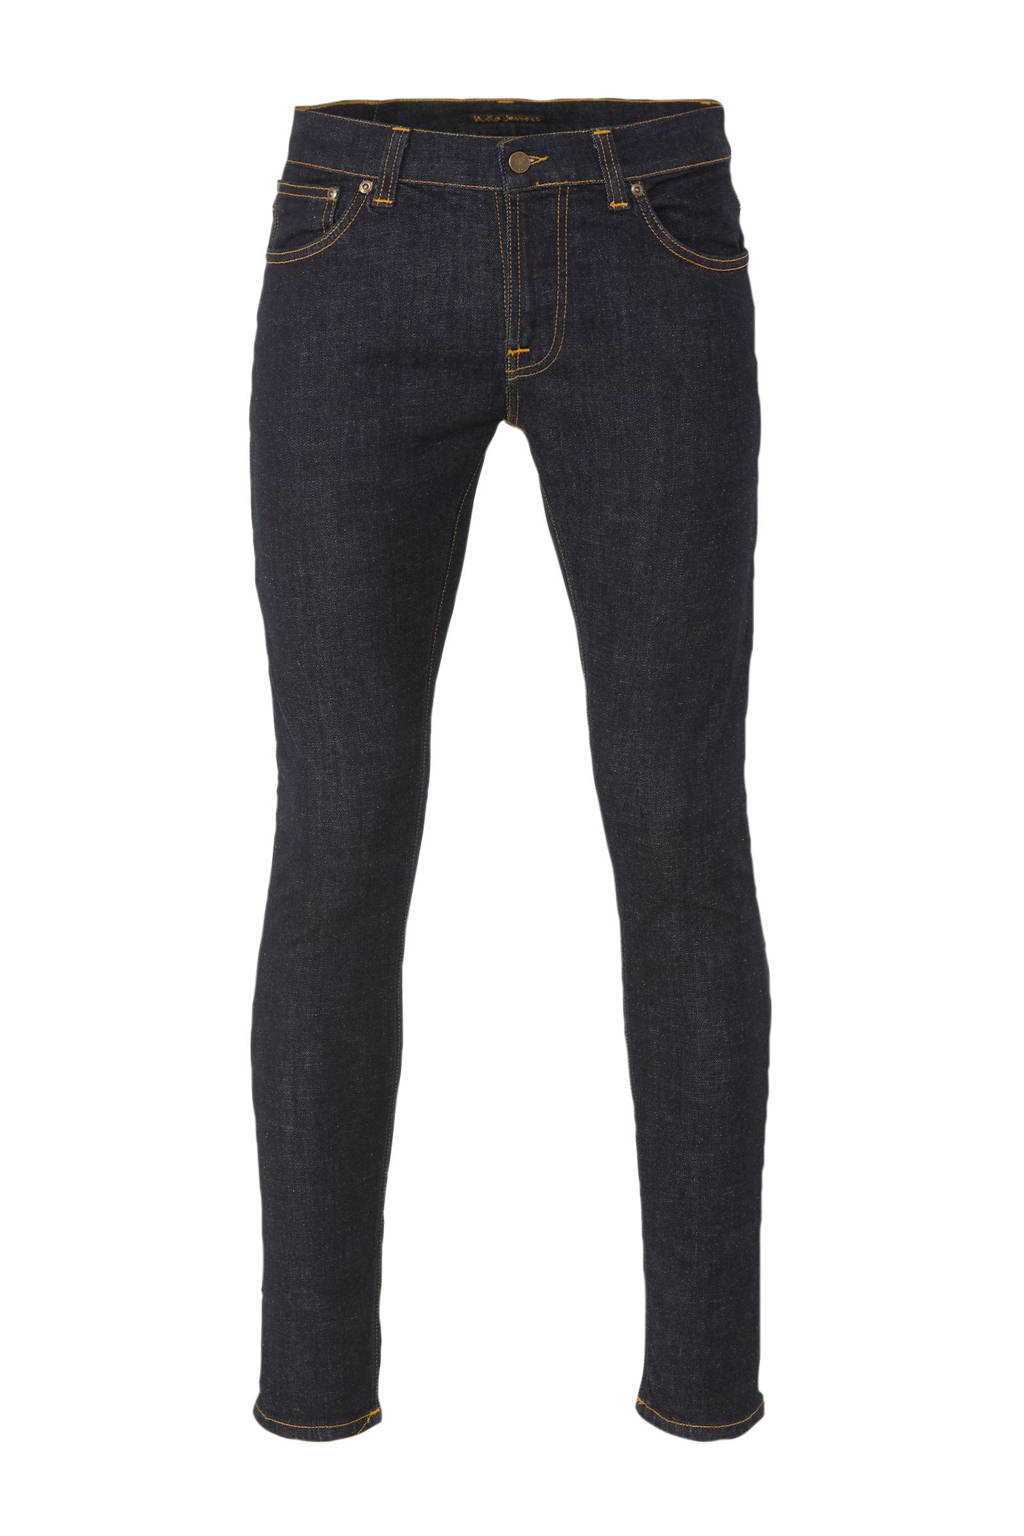 Nudie Jeans slim fit jeans Tight Terry rinse twill, Rinse Twill